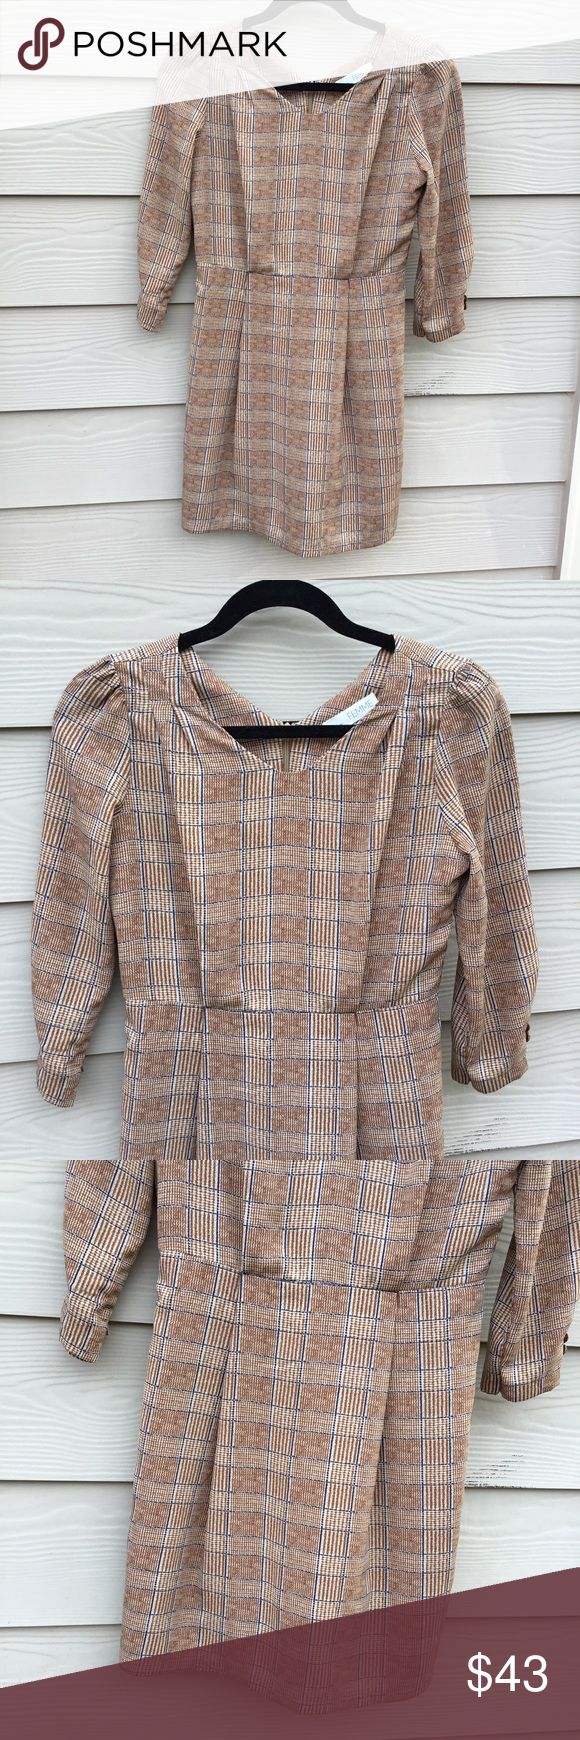 "Retro brown dress 3/4 sleeve V-neck Size S ⭐️ Retro style, Brown plaid pattern, Mini dress ⭐️ Zipper on the back  ⭐️ V-Neck, 3/4 Sleeve  ⭐️ Size S, Measurements laying flat:      Length 33"", Bust 18"", waist 14"", sleeve length 18"", shoulder width 15"" Dresses Mini"